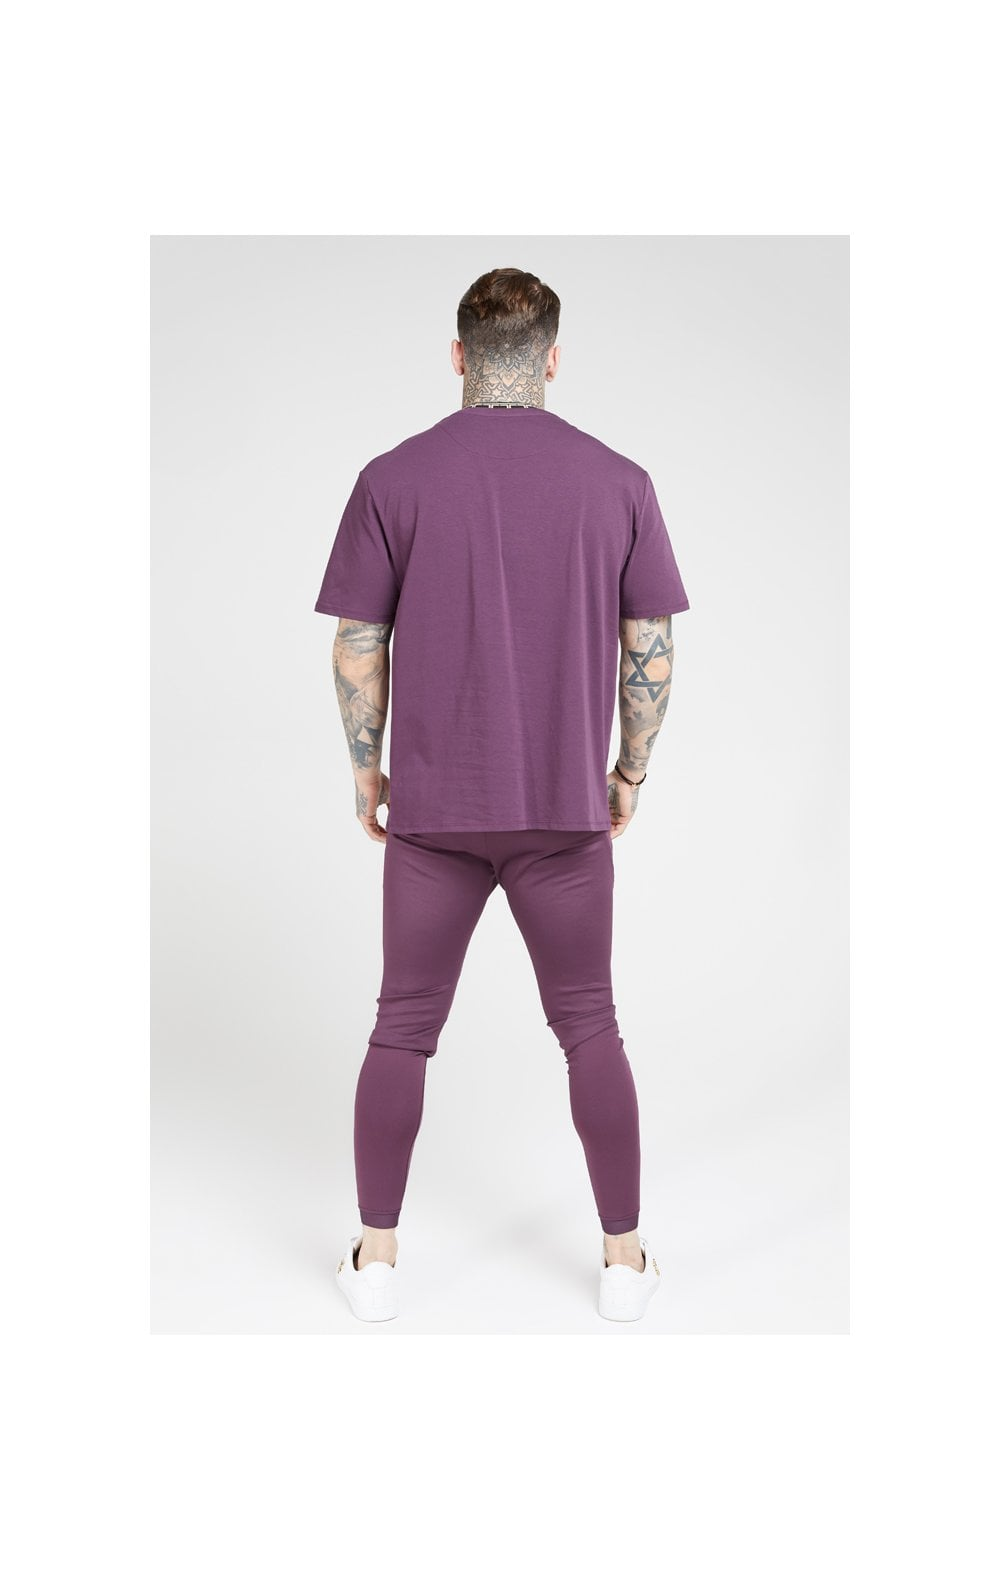 Load image into Gallery viewer, SikSilk Tape Collar Essential Tee - Burgundy & Gold (5)